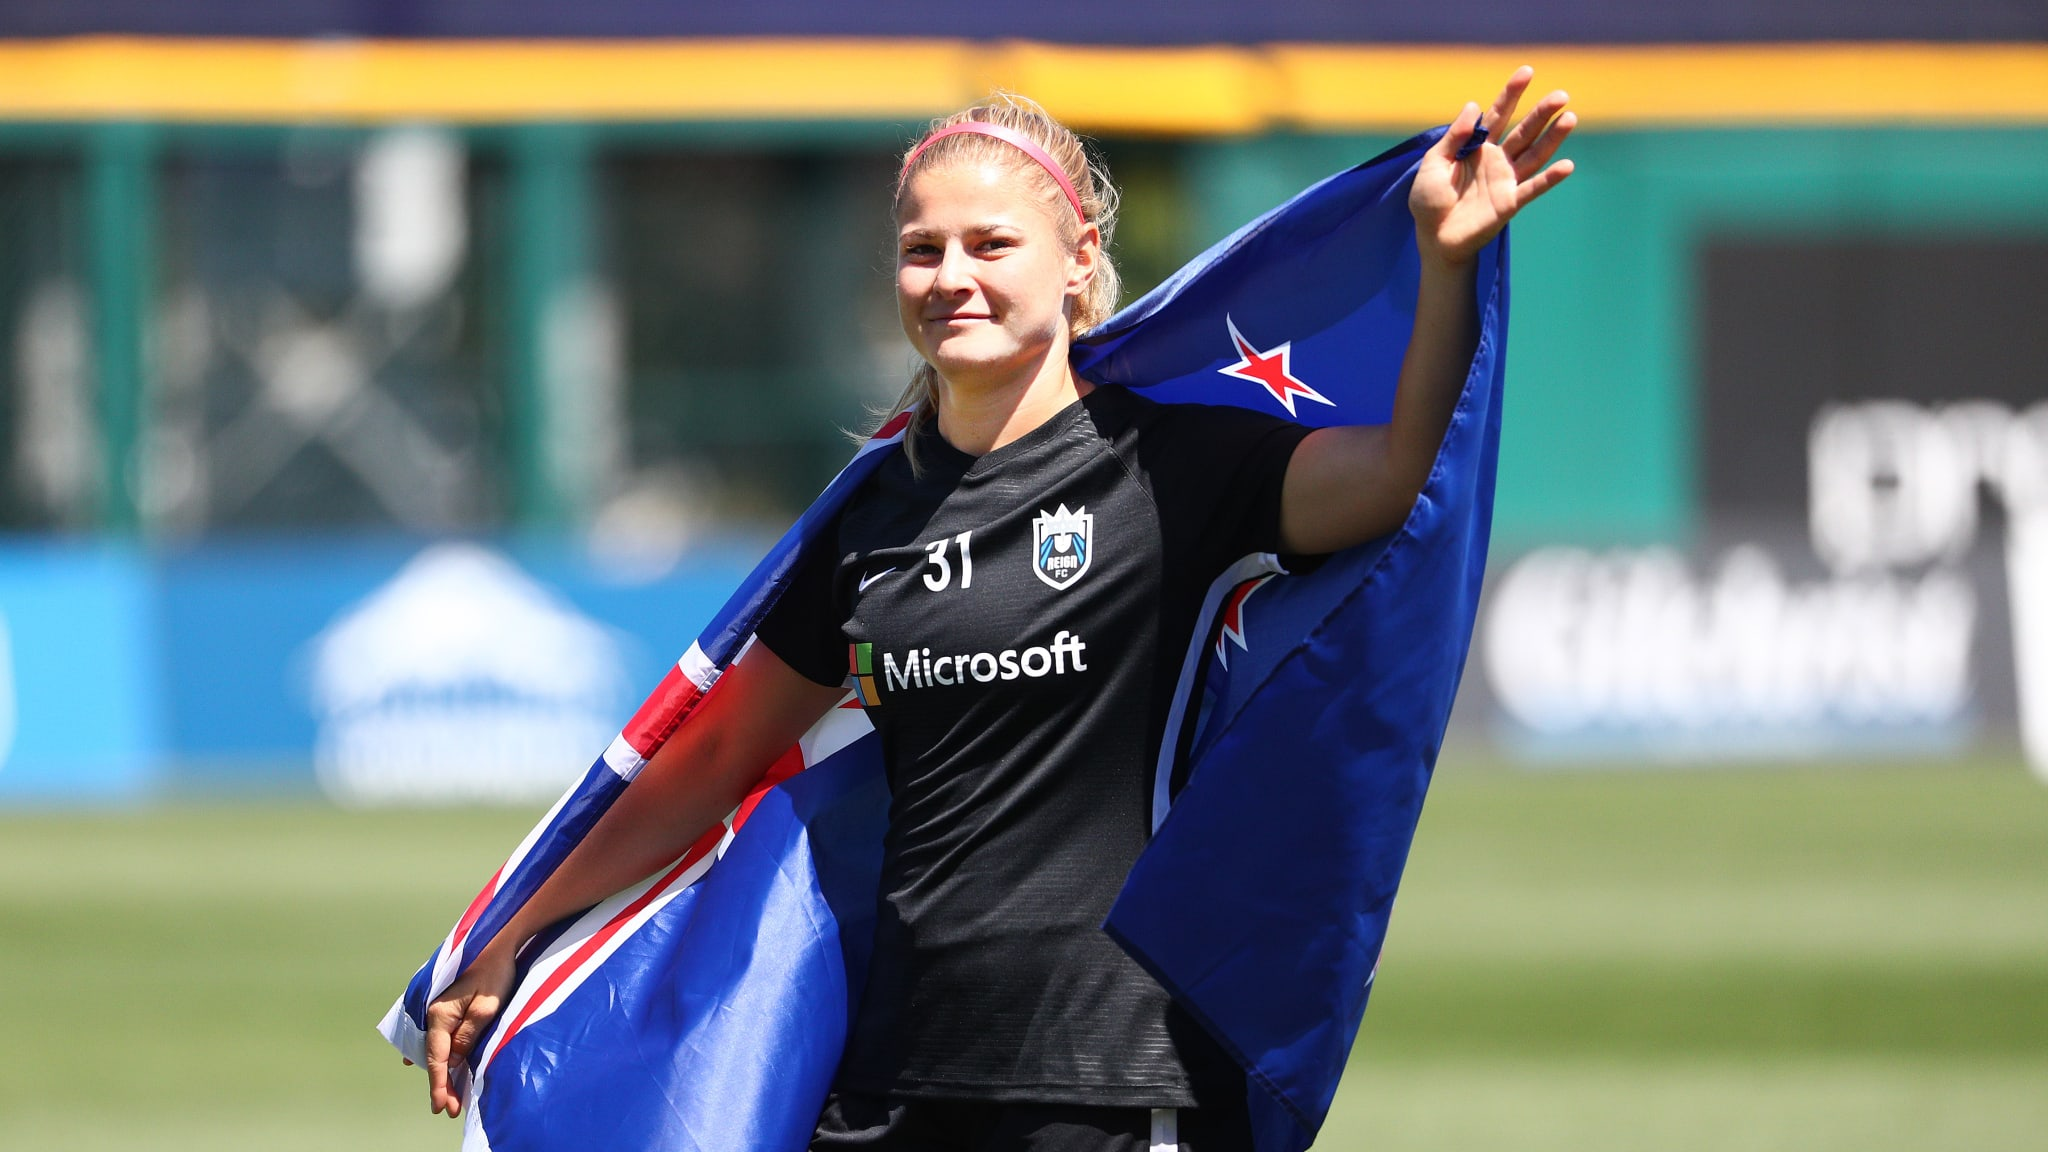 Rosie White #31 of the Seattle Reign FC is honored for representing the New Zealand Women's National Football Team prior to taking on the Chicago Red Stars during their game at Cheney Stadium on July 28, 2019 in Tacoma, Washington.